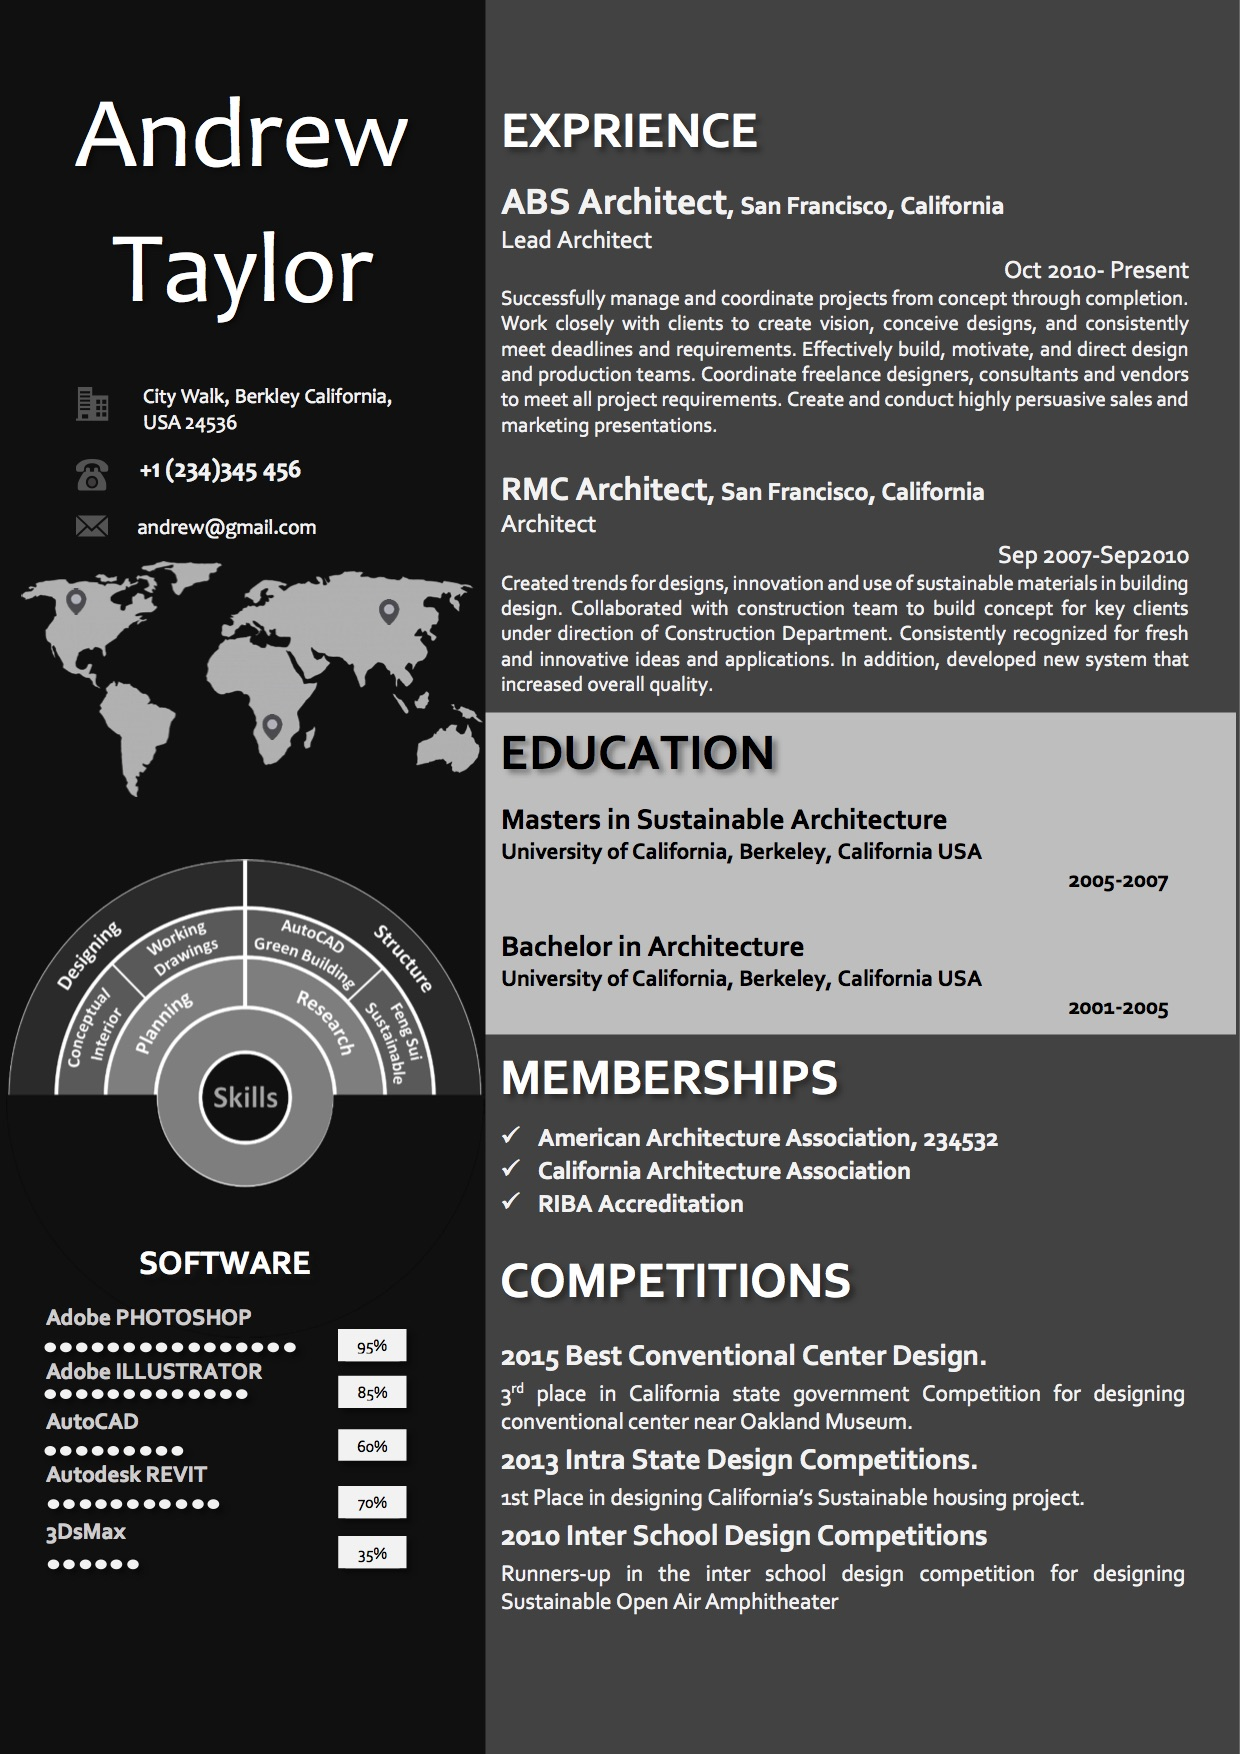 Ms Office 2010 Cv Templates - Picture Ideas References